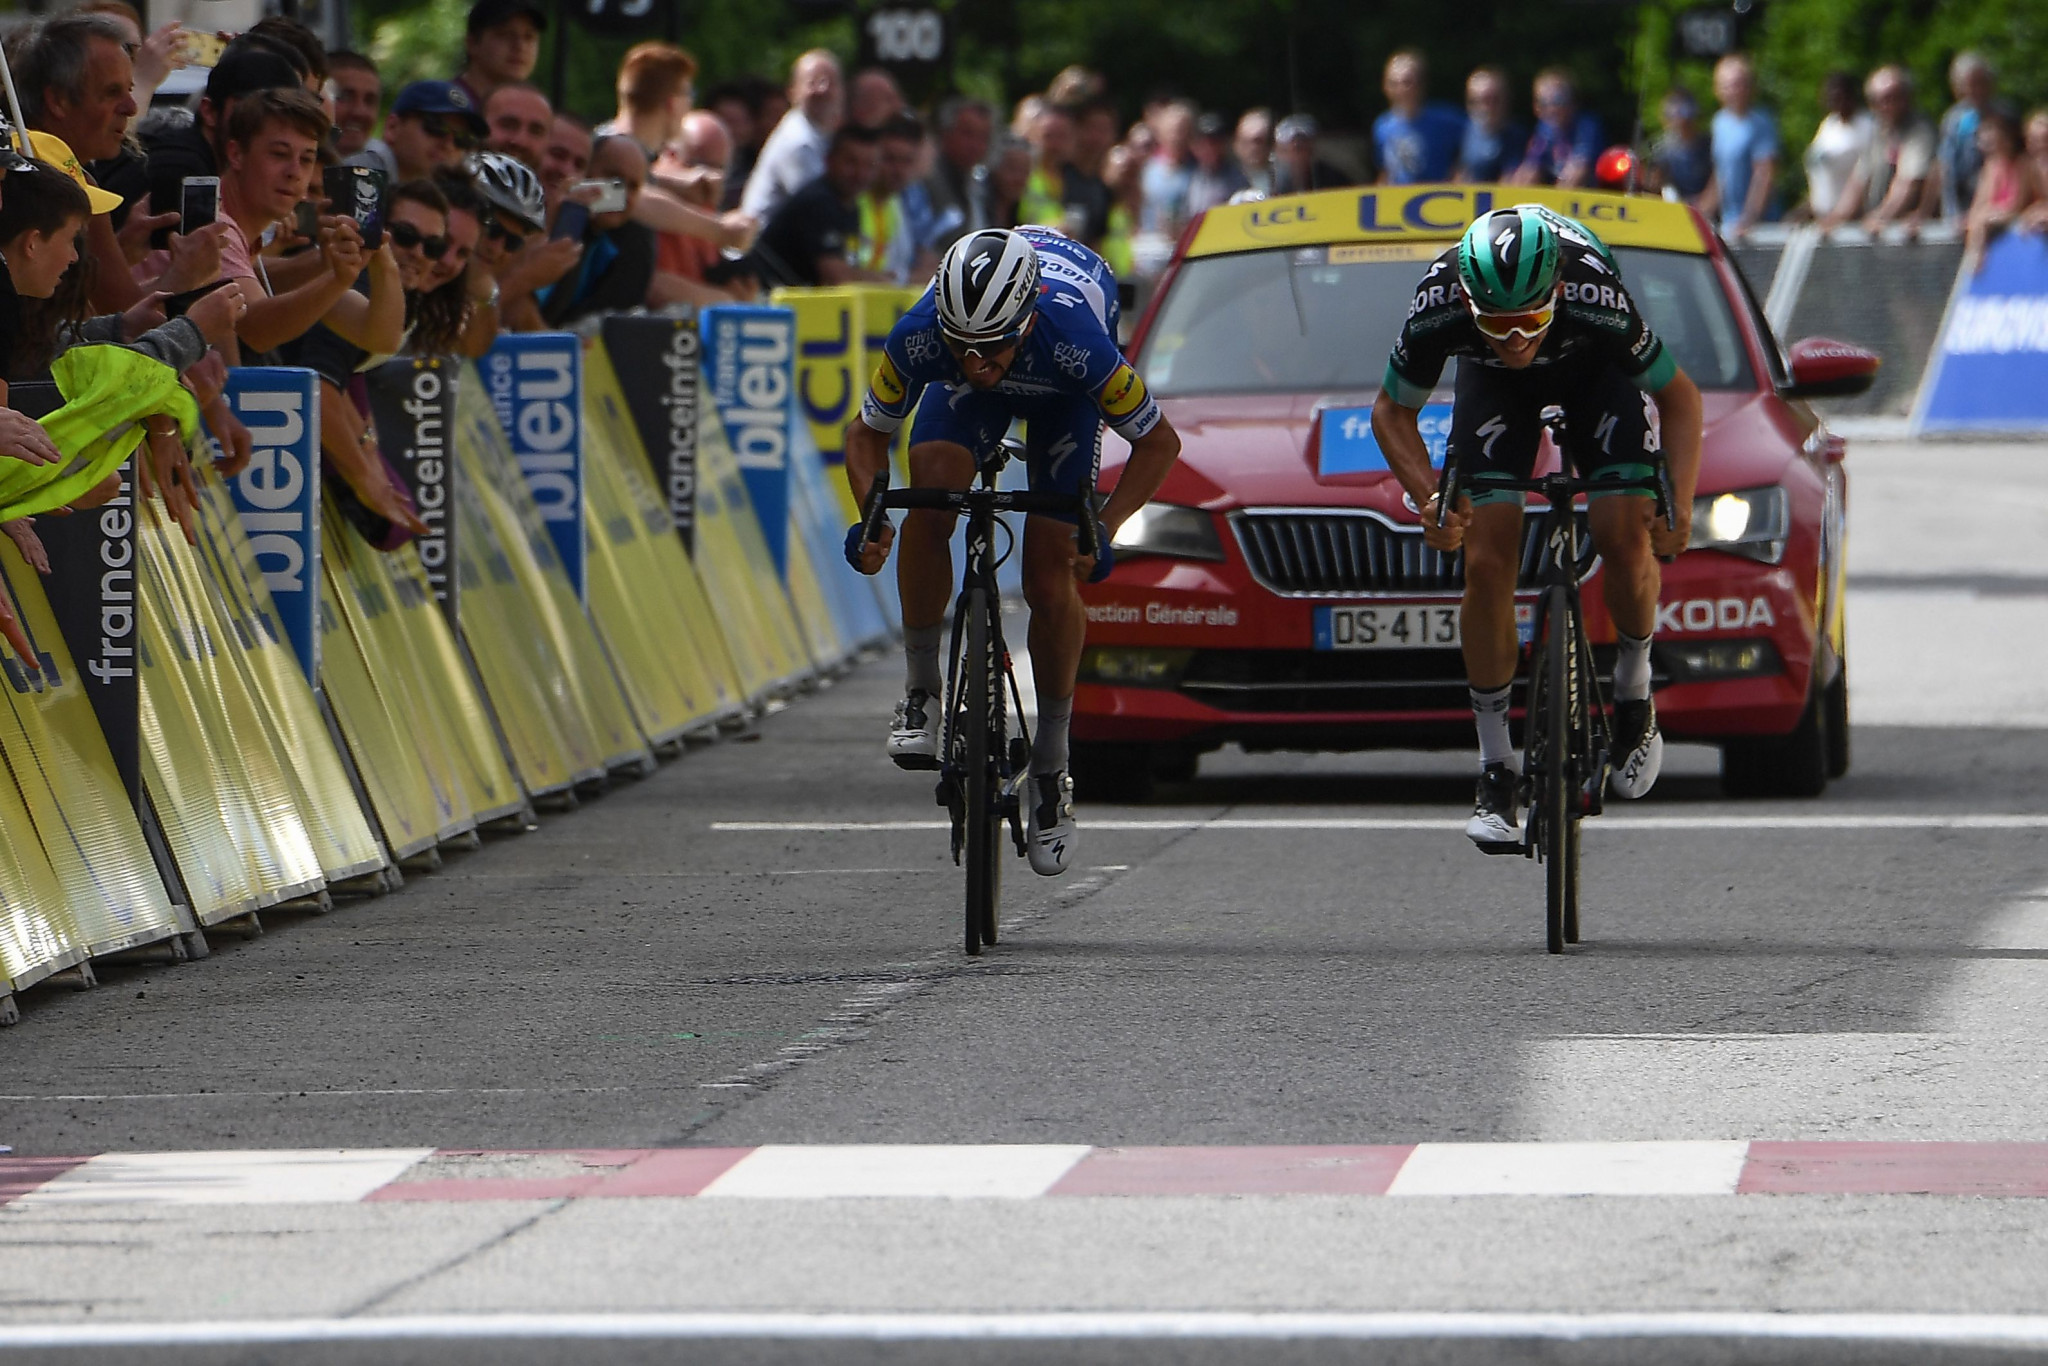 Alaphilippe wins stage six of Critérium du Dauphiné in photo finish as Yates retains overall lead